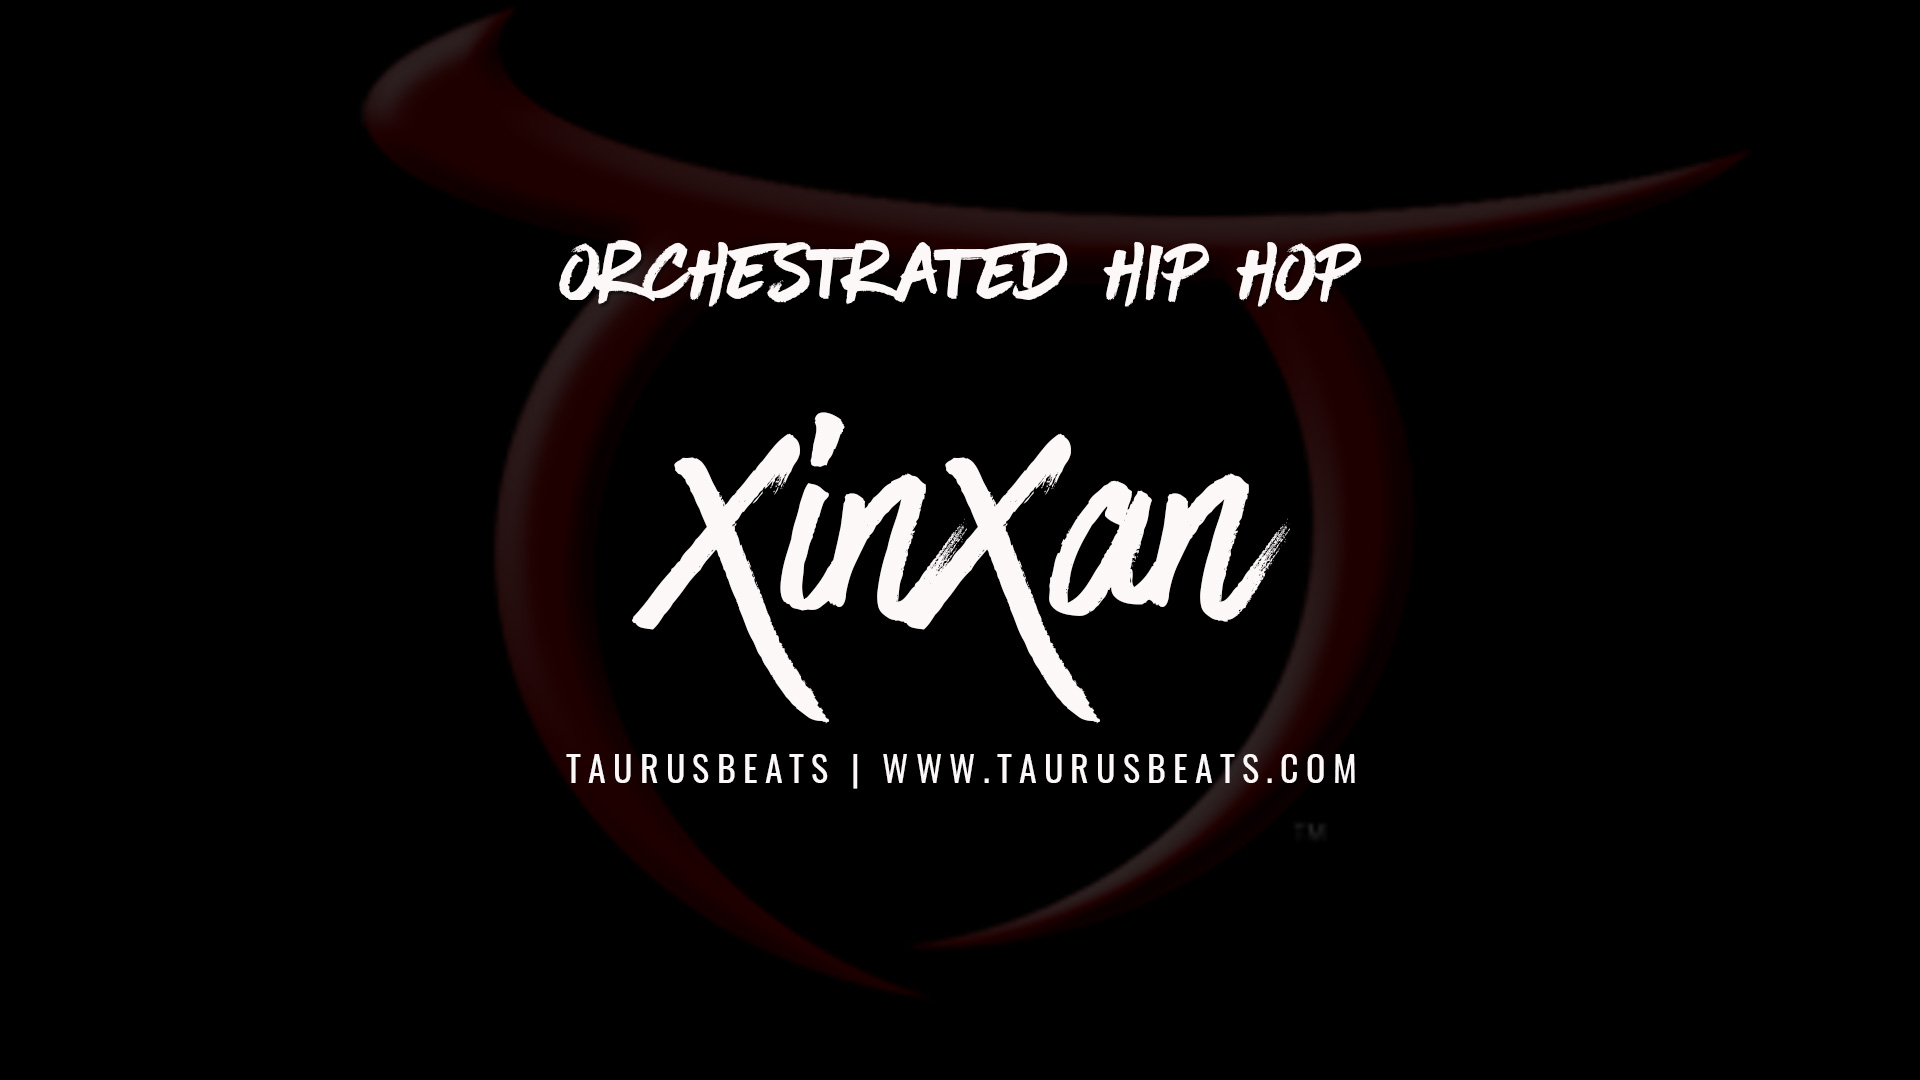 image for XinXan